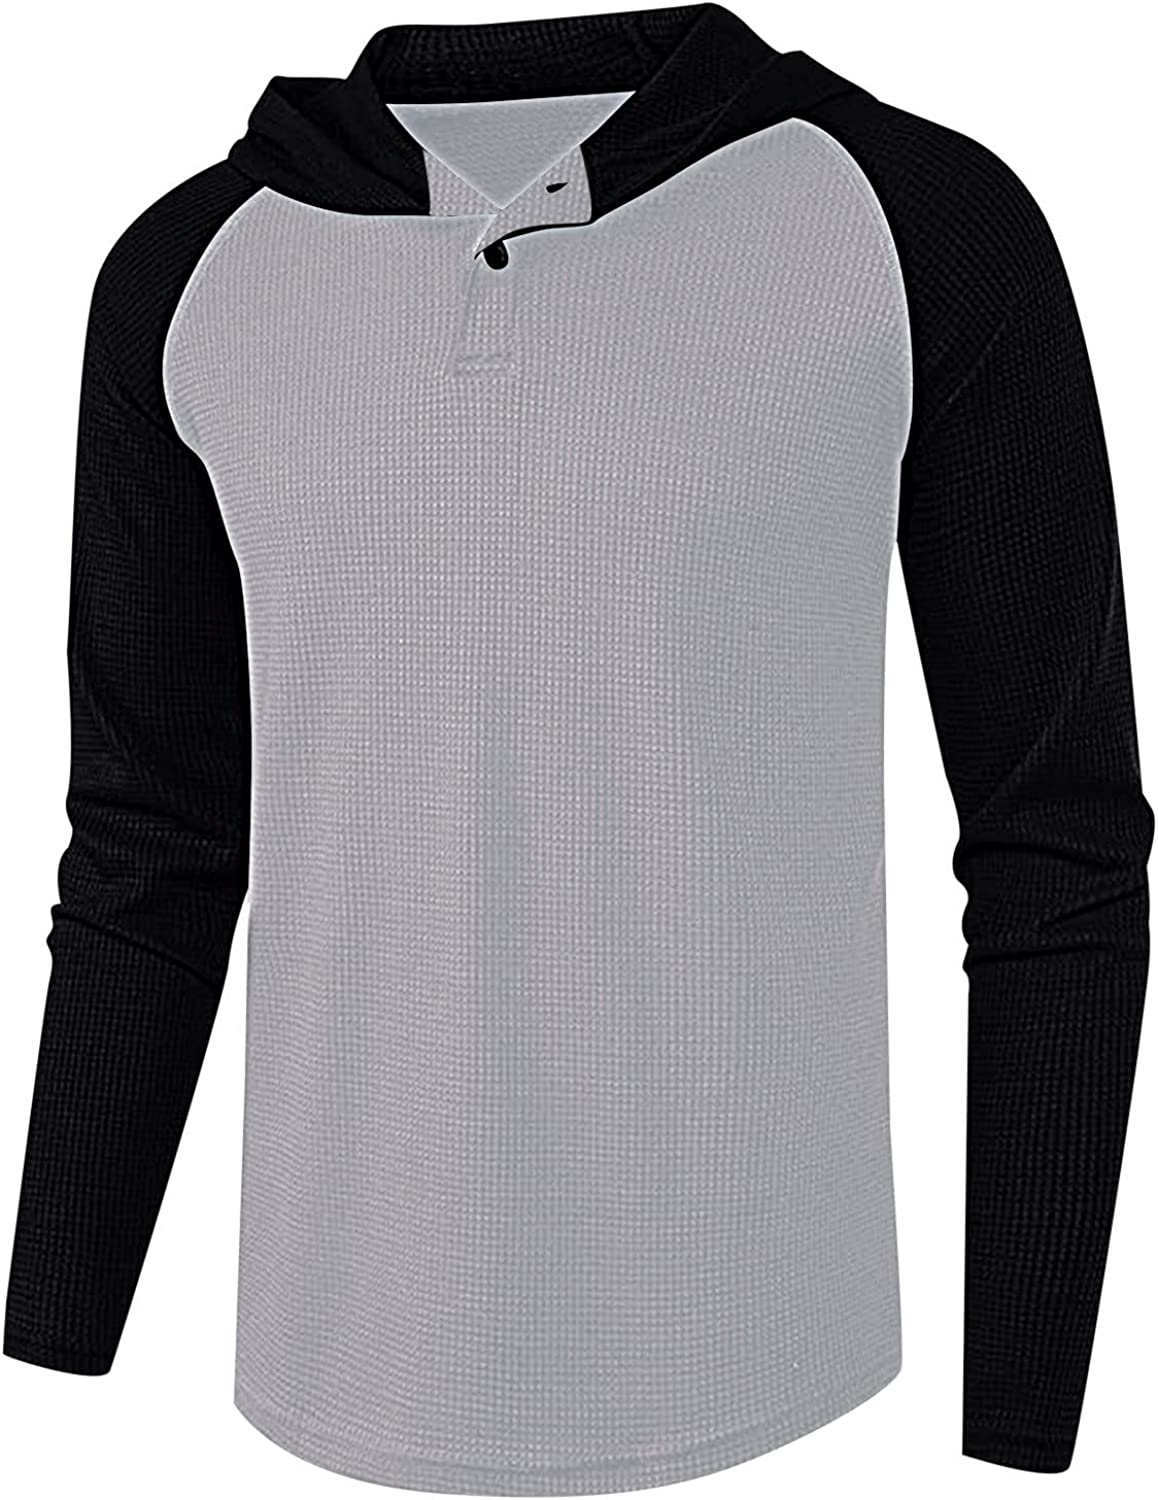 Mens Long Sleeve T-Shirt Casual Tops Tee Classic Fit Basic Shirts Round Neck V-Neck